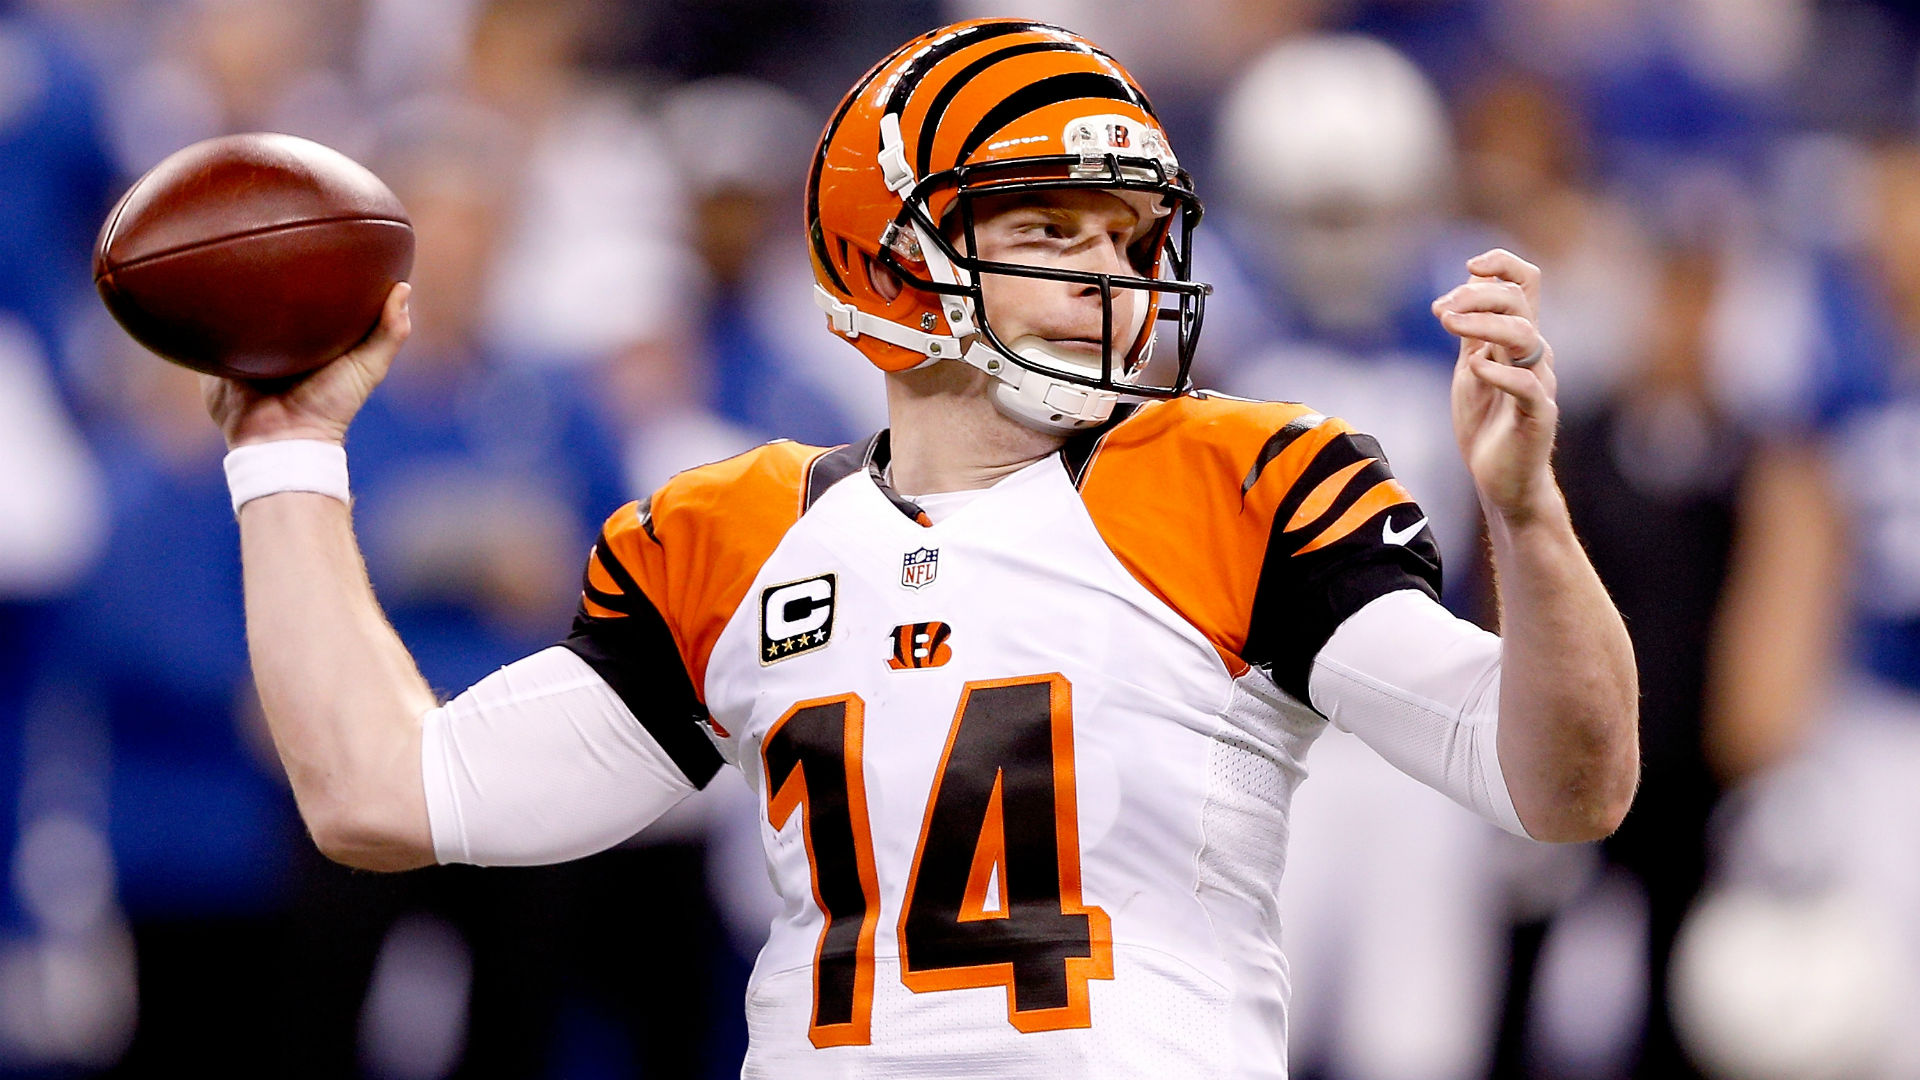 Fantasy Football Sleepers 2015: Don't write off Dalton